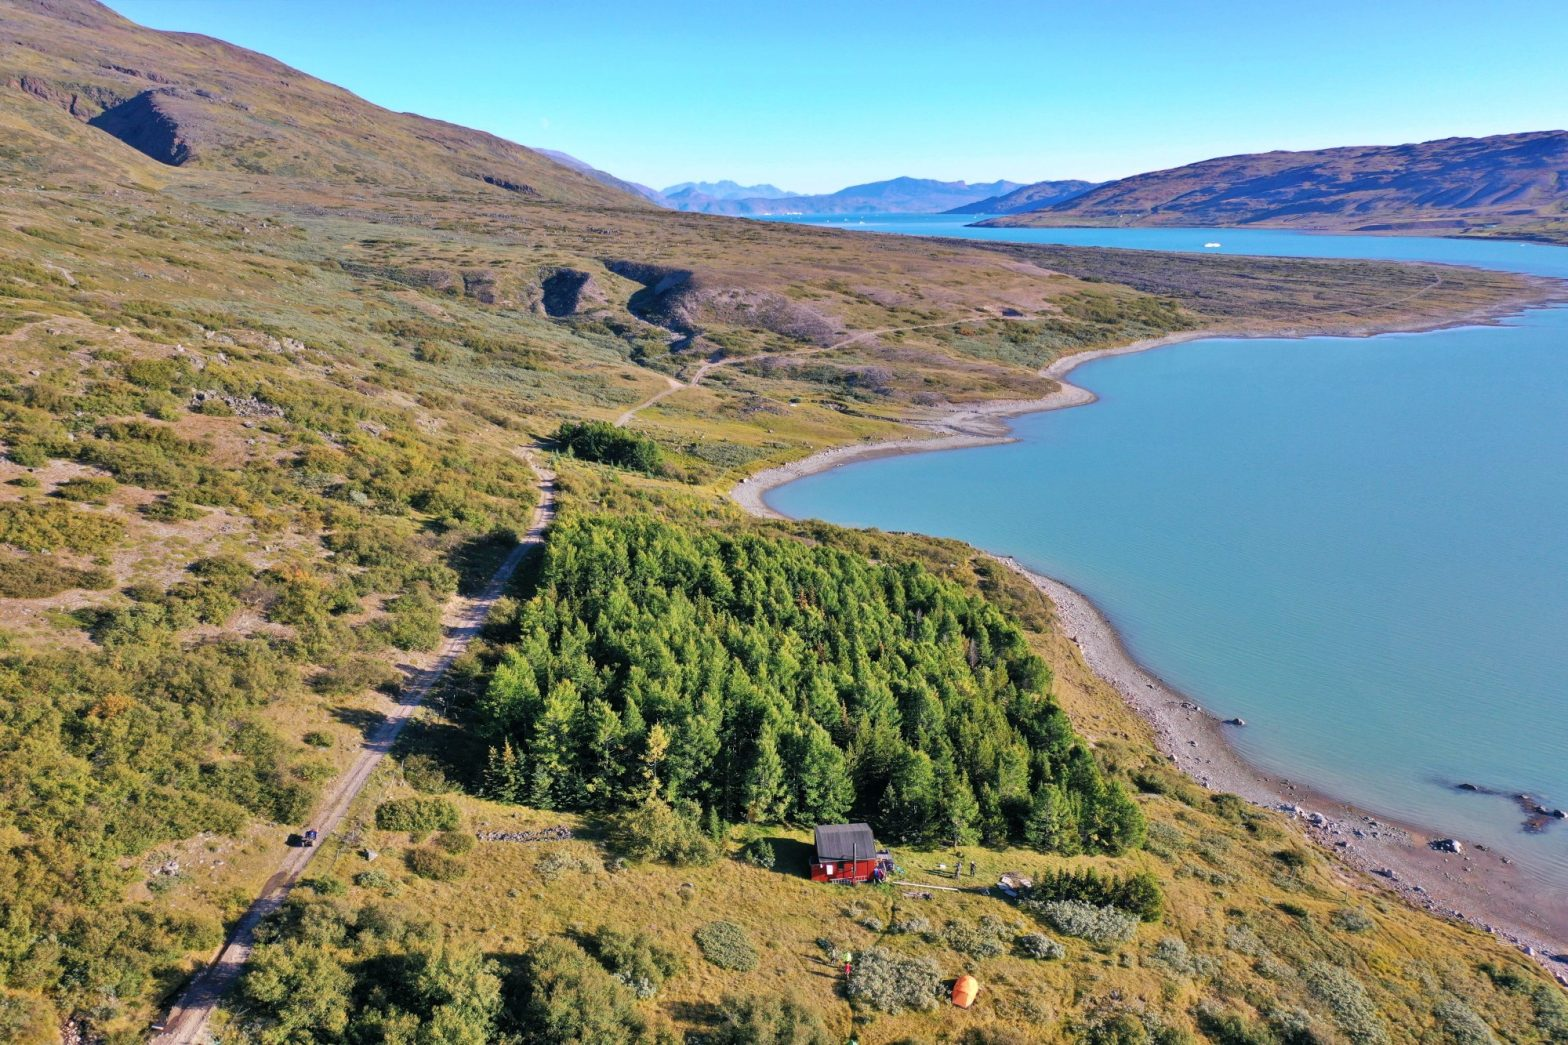 Greenland Trees - Carbon drawdown for a green planet